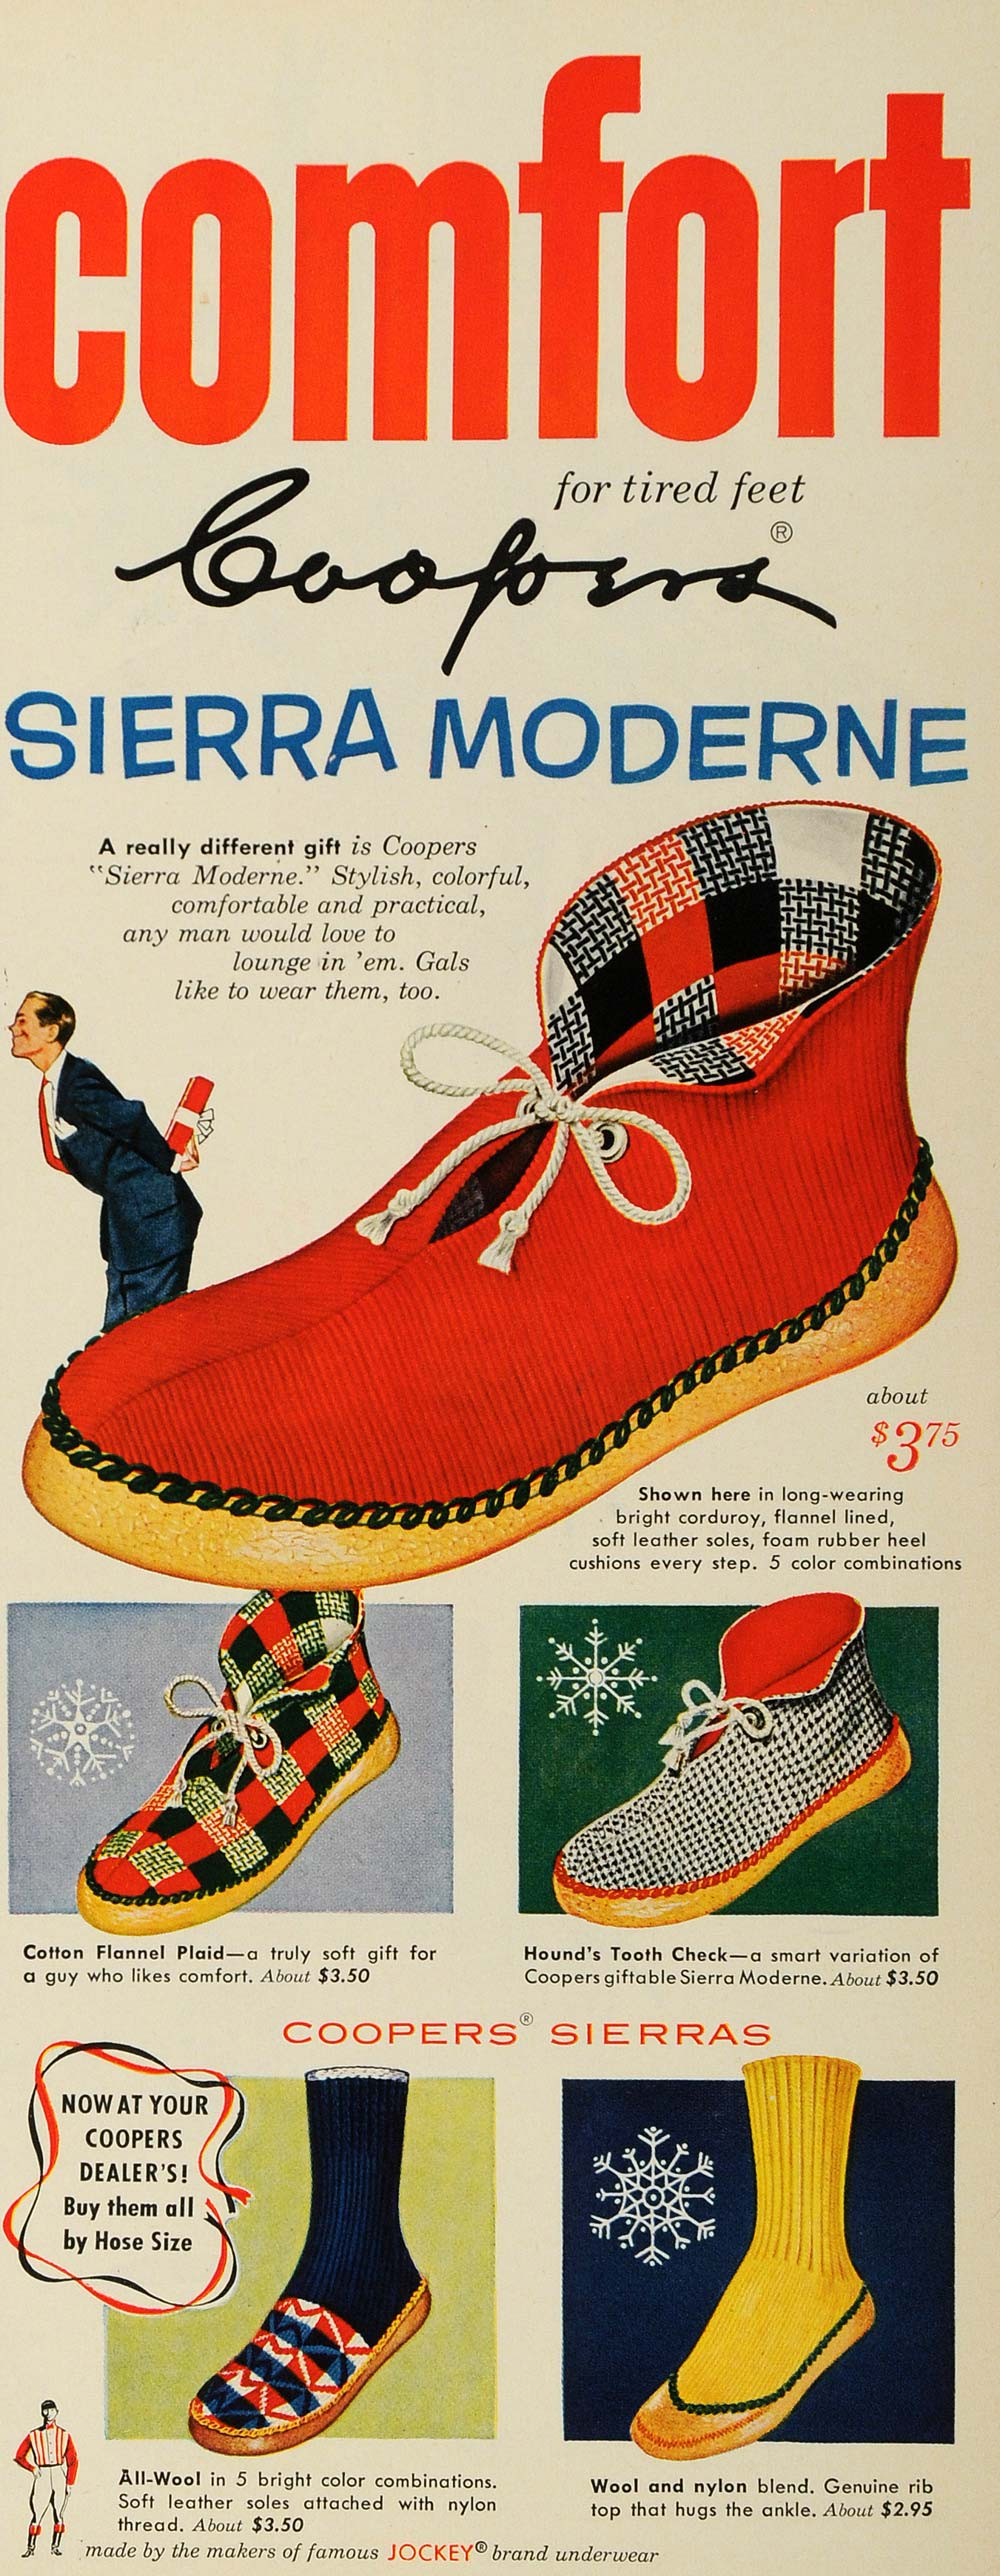 1952 Ad Coopers Sierra Moderne Slippers Socks Footwear - ORIGINAL ESQ4 3e17aac98e2f